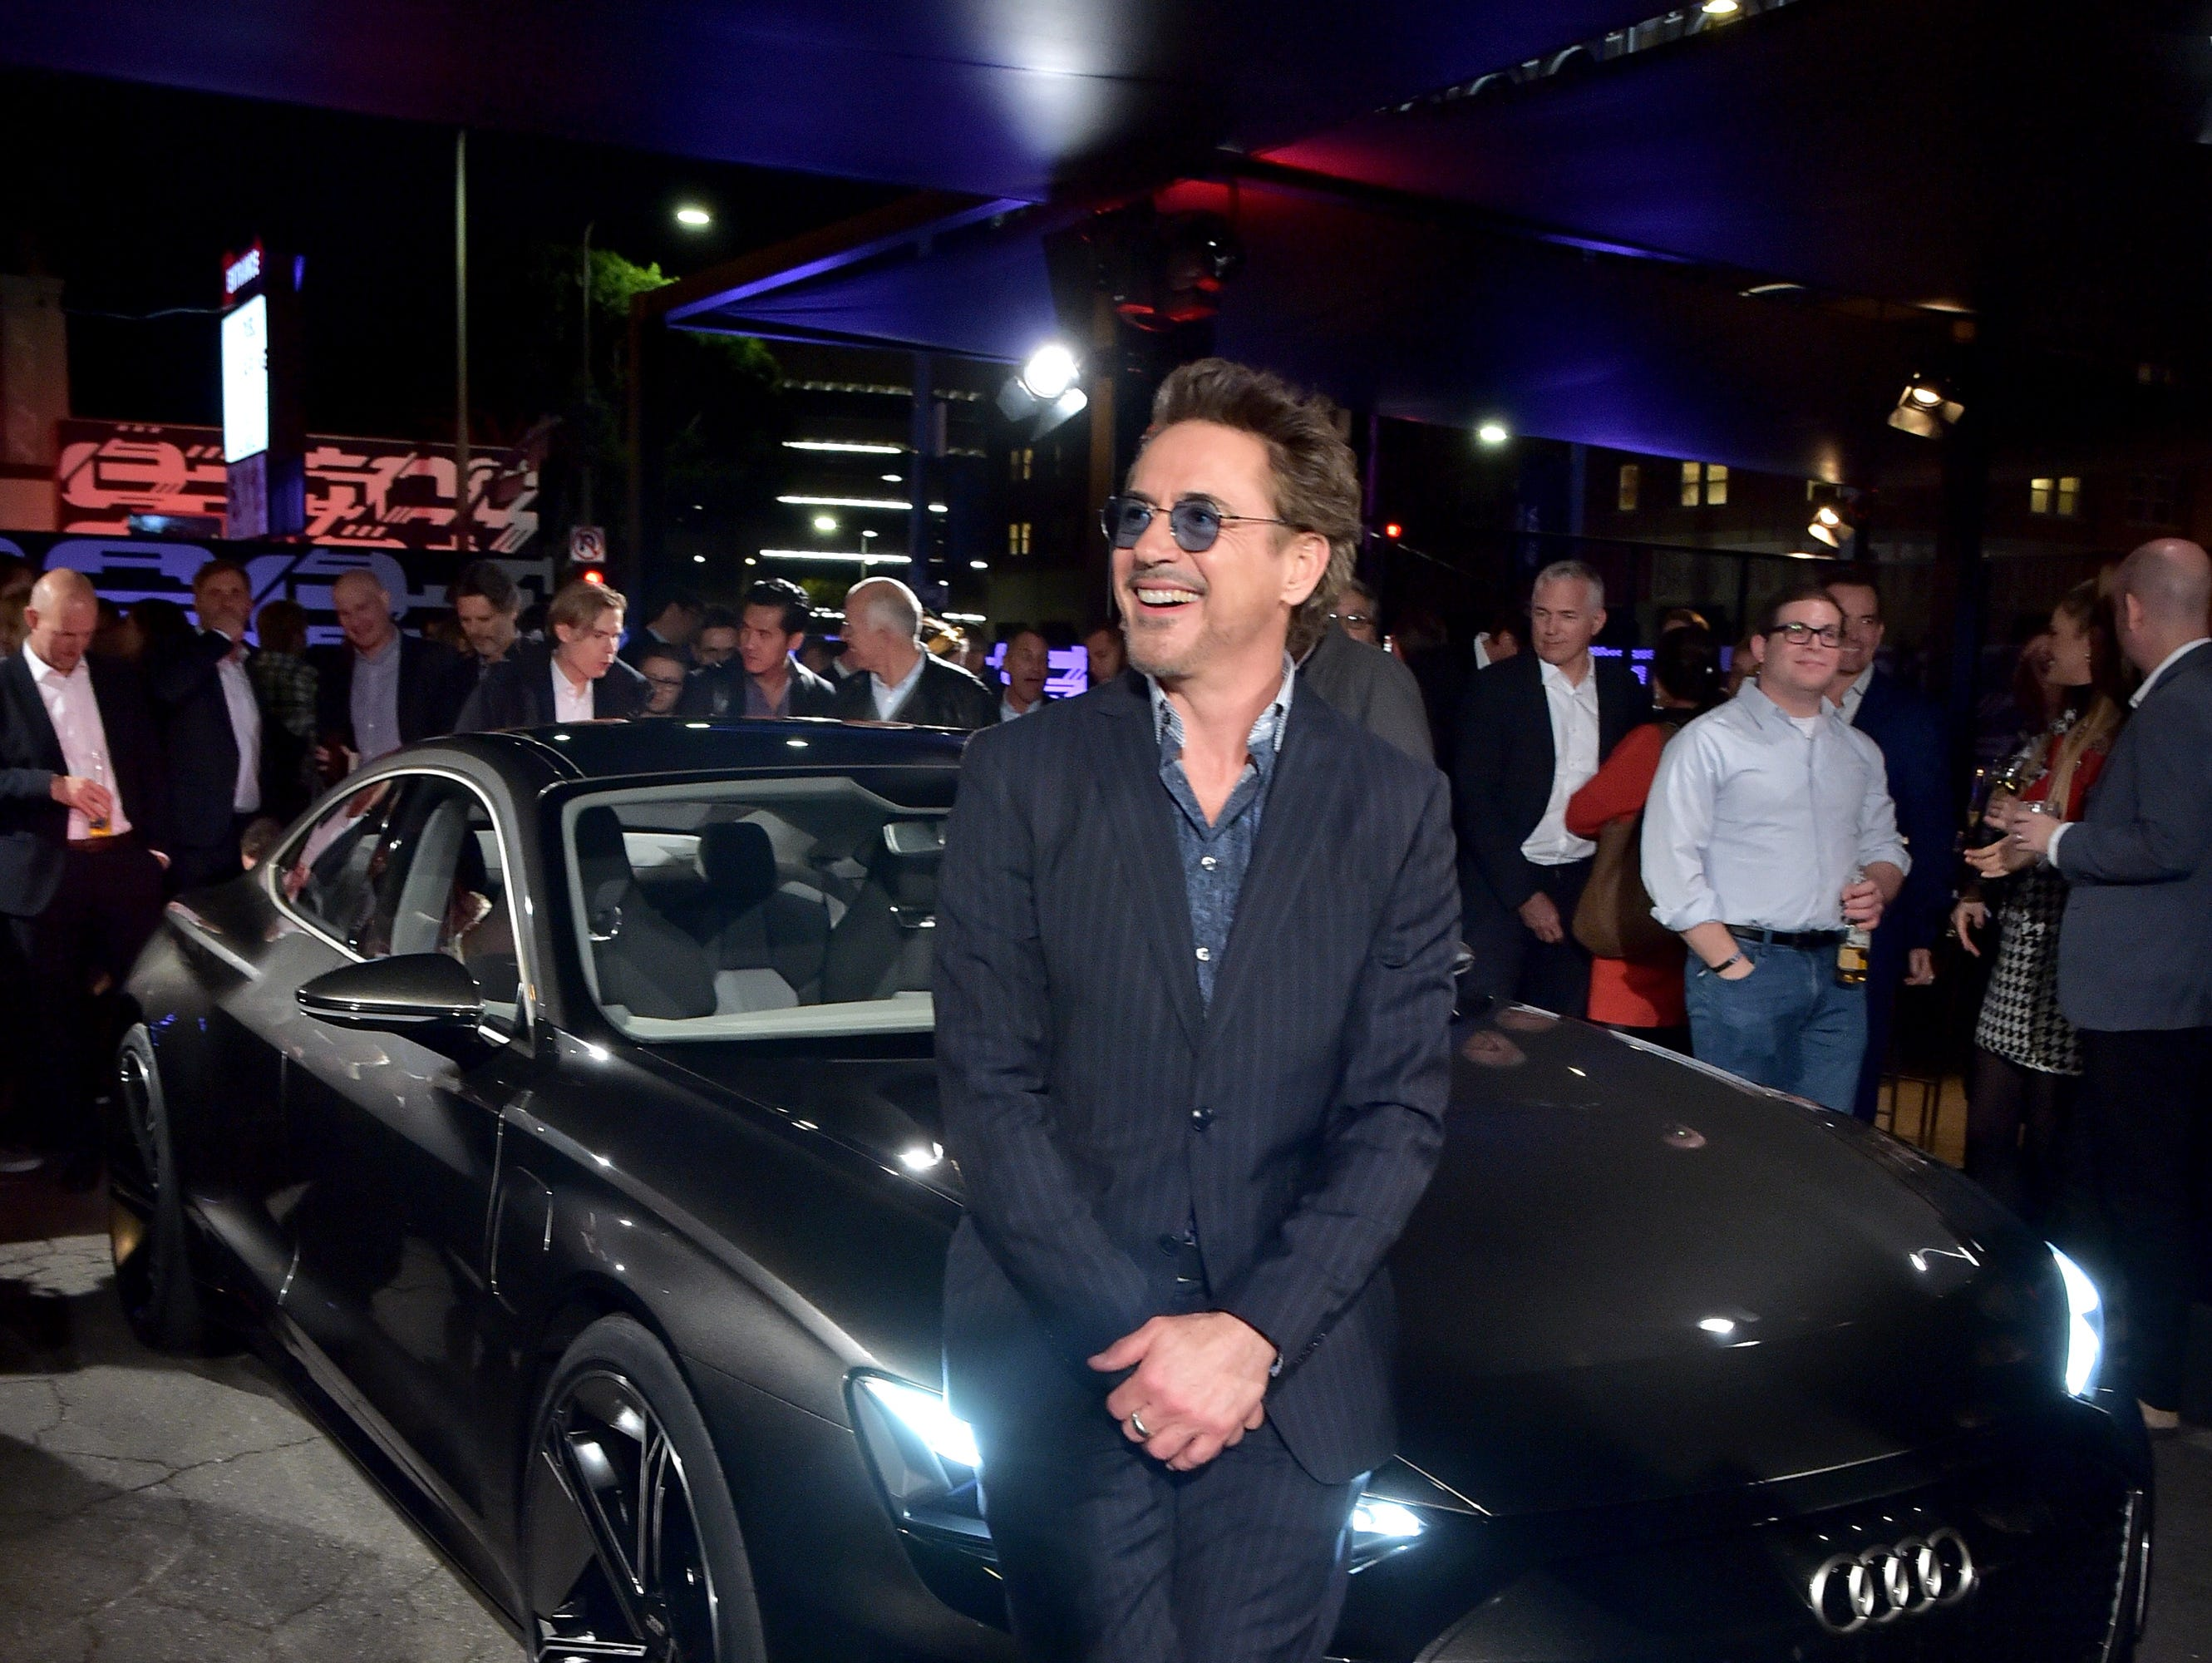 Robert Downey Jr. attends the global reveal of the Audi e-tron GT concept in Los Angeles on Monday, November 26th, 2018.